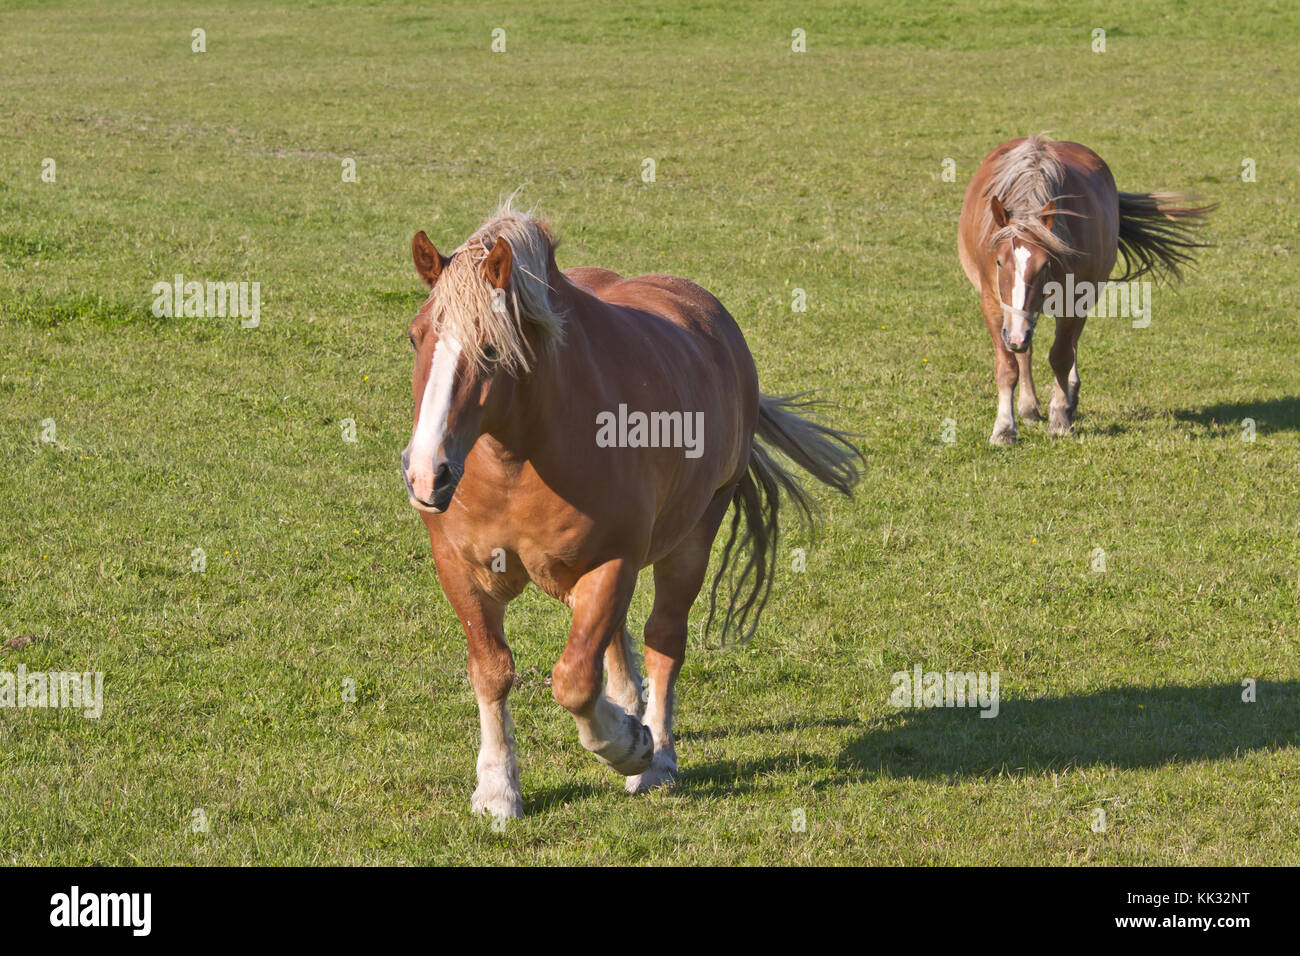 Two North Swedish horses - Stock Image